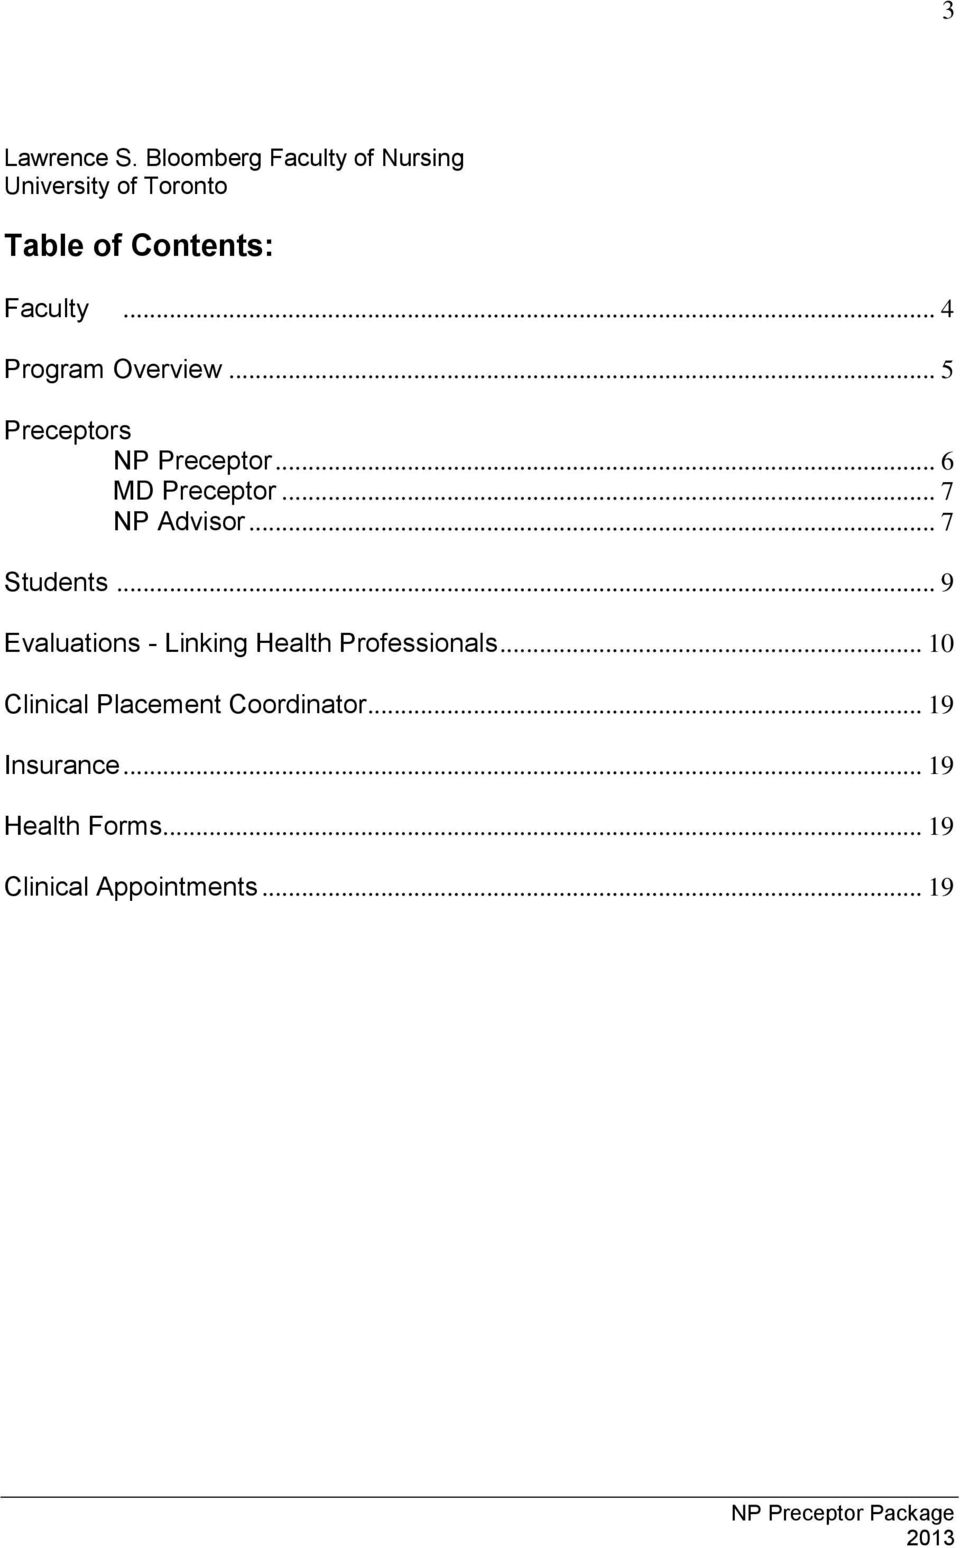 .. 4 Program Overview... 5 Preceptors NP Preceptor... 6 MD Preceptor... 7 NP Advisor.